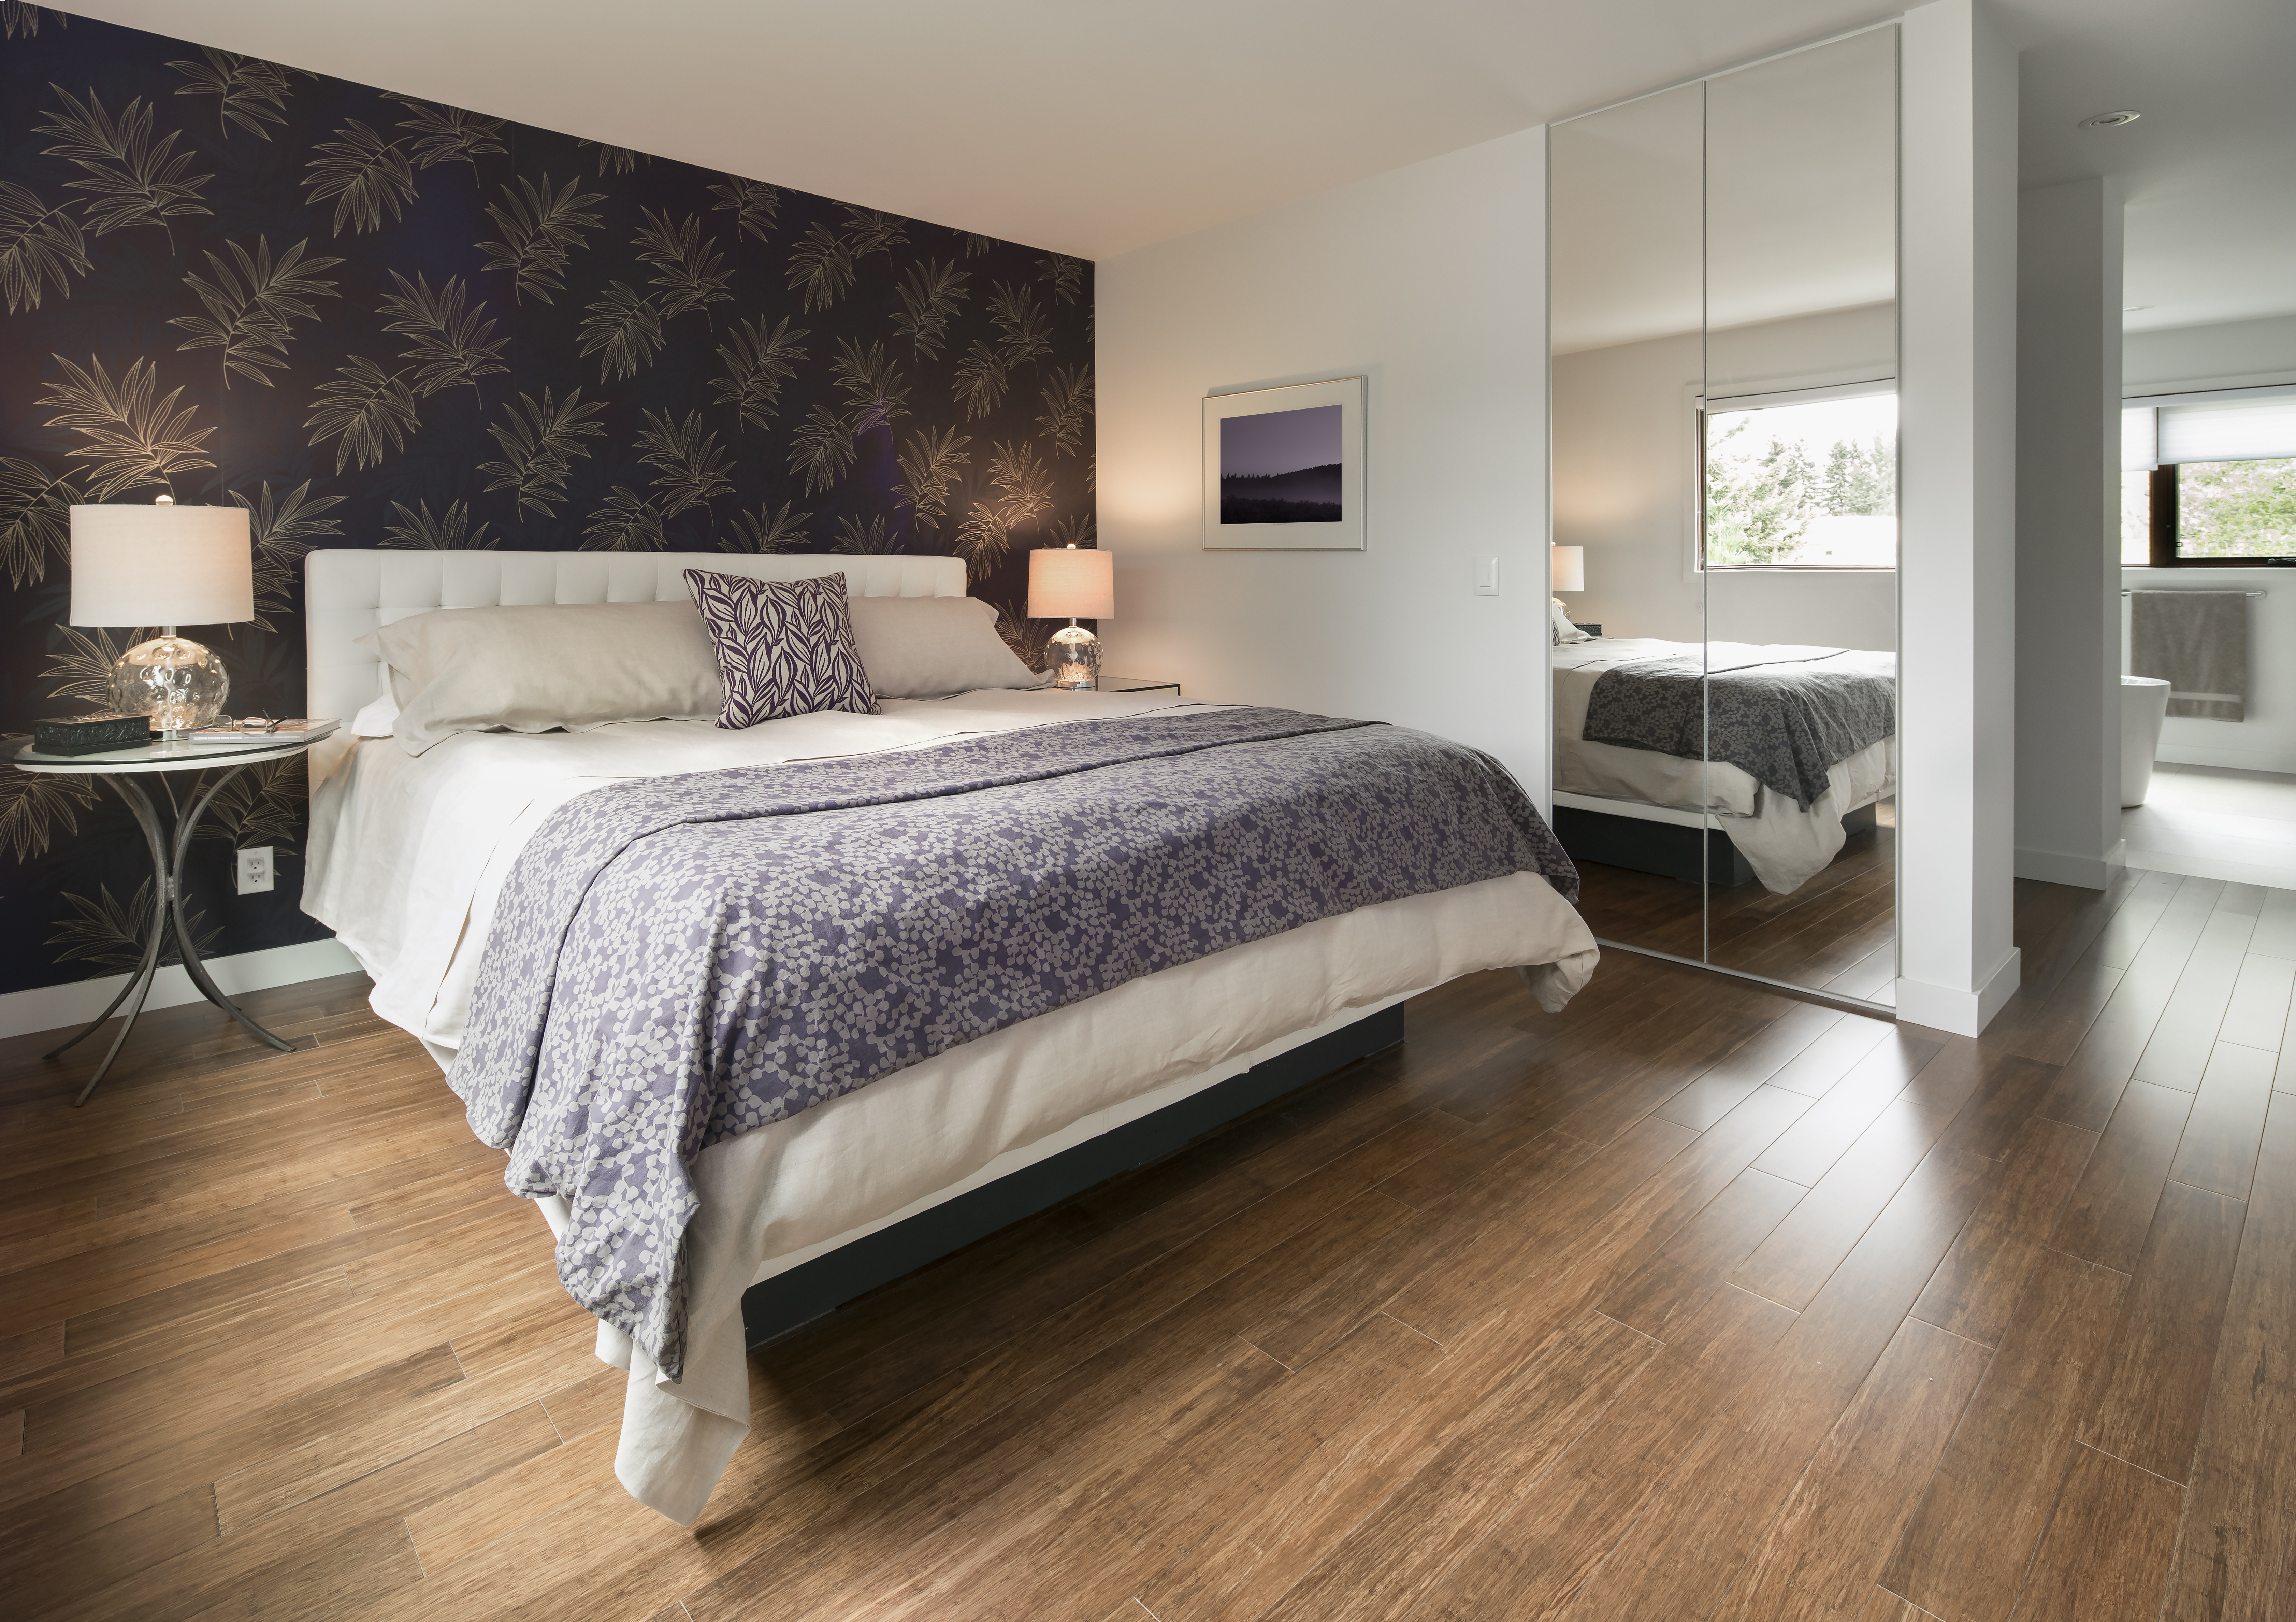 How To Match Wood Tones To Wall Colors